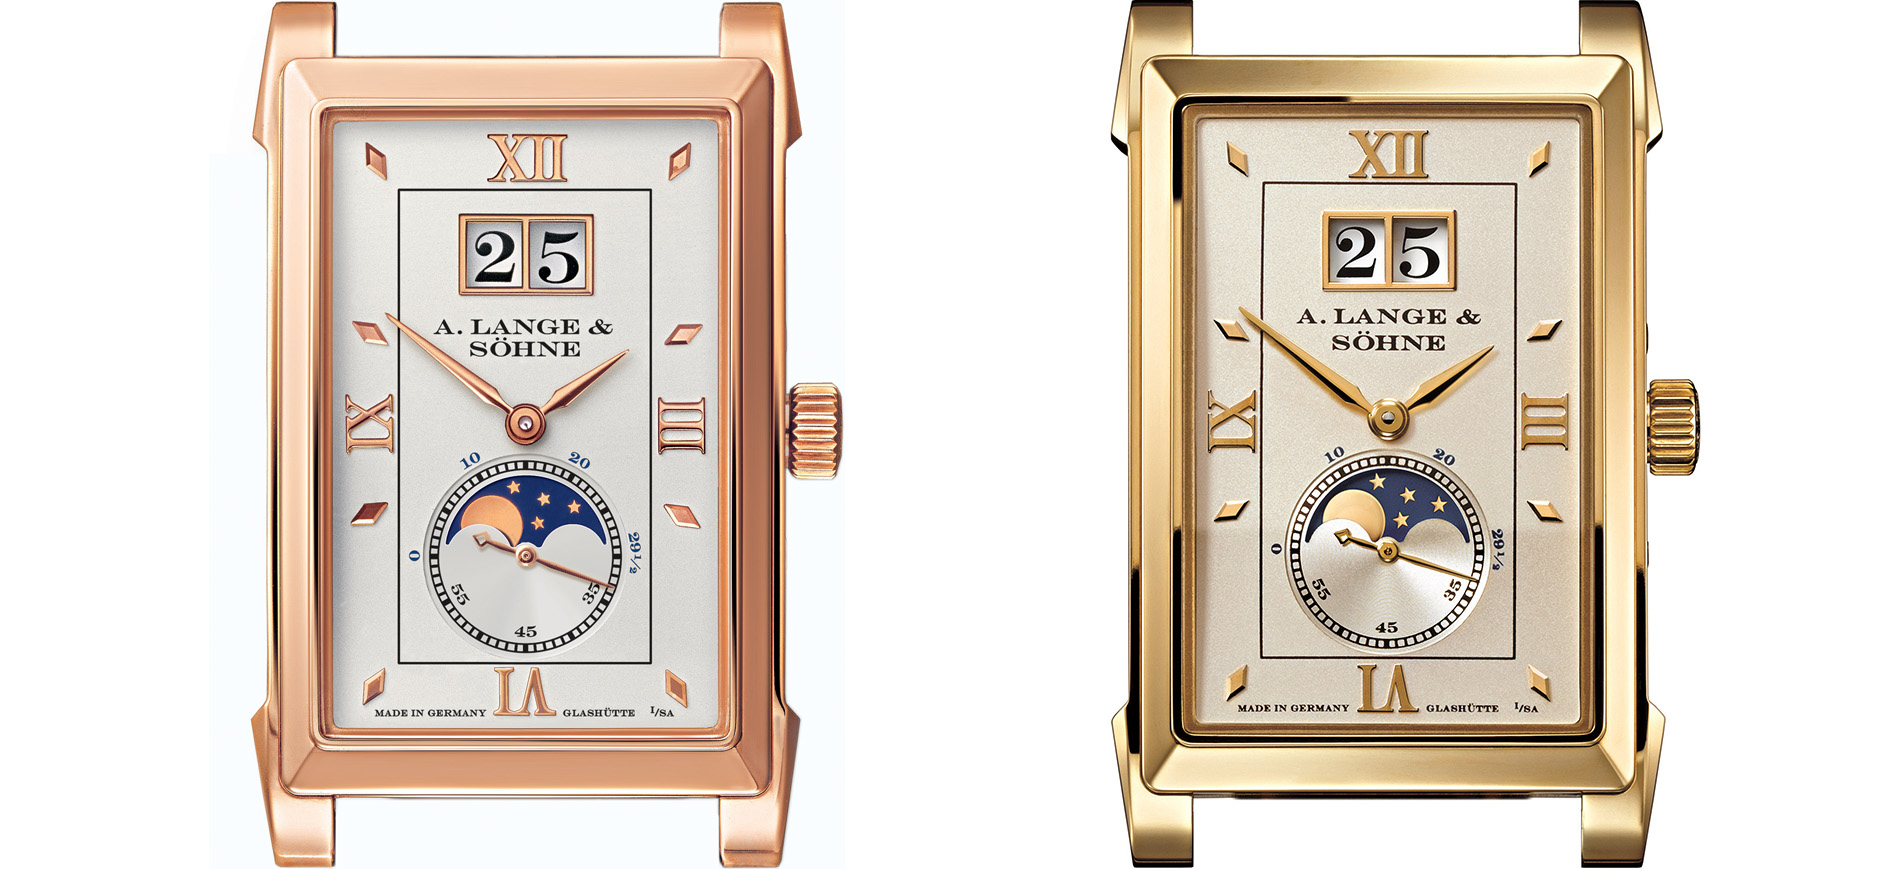 a lange söhne cabaret moonphase pink gold yellow gold reference 118.021 and 118.032